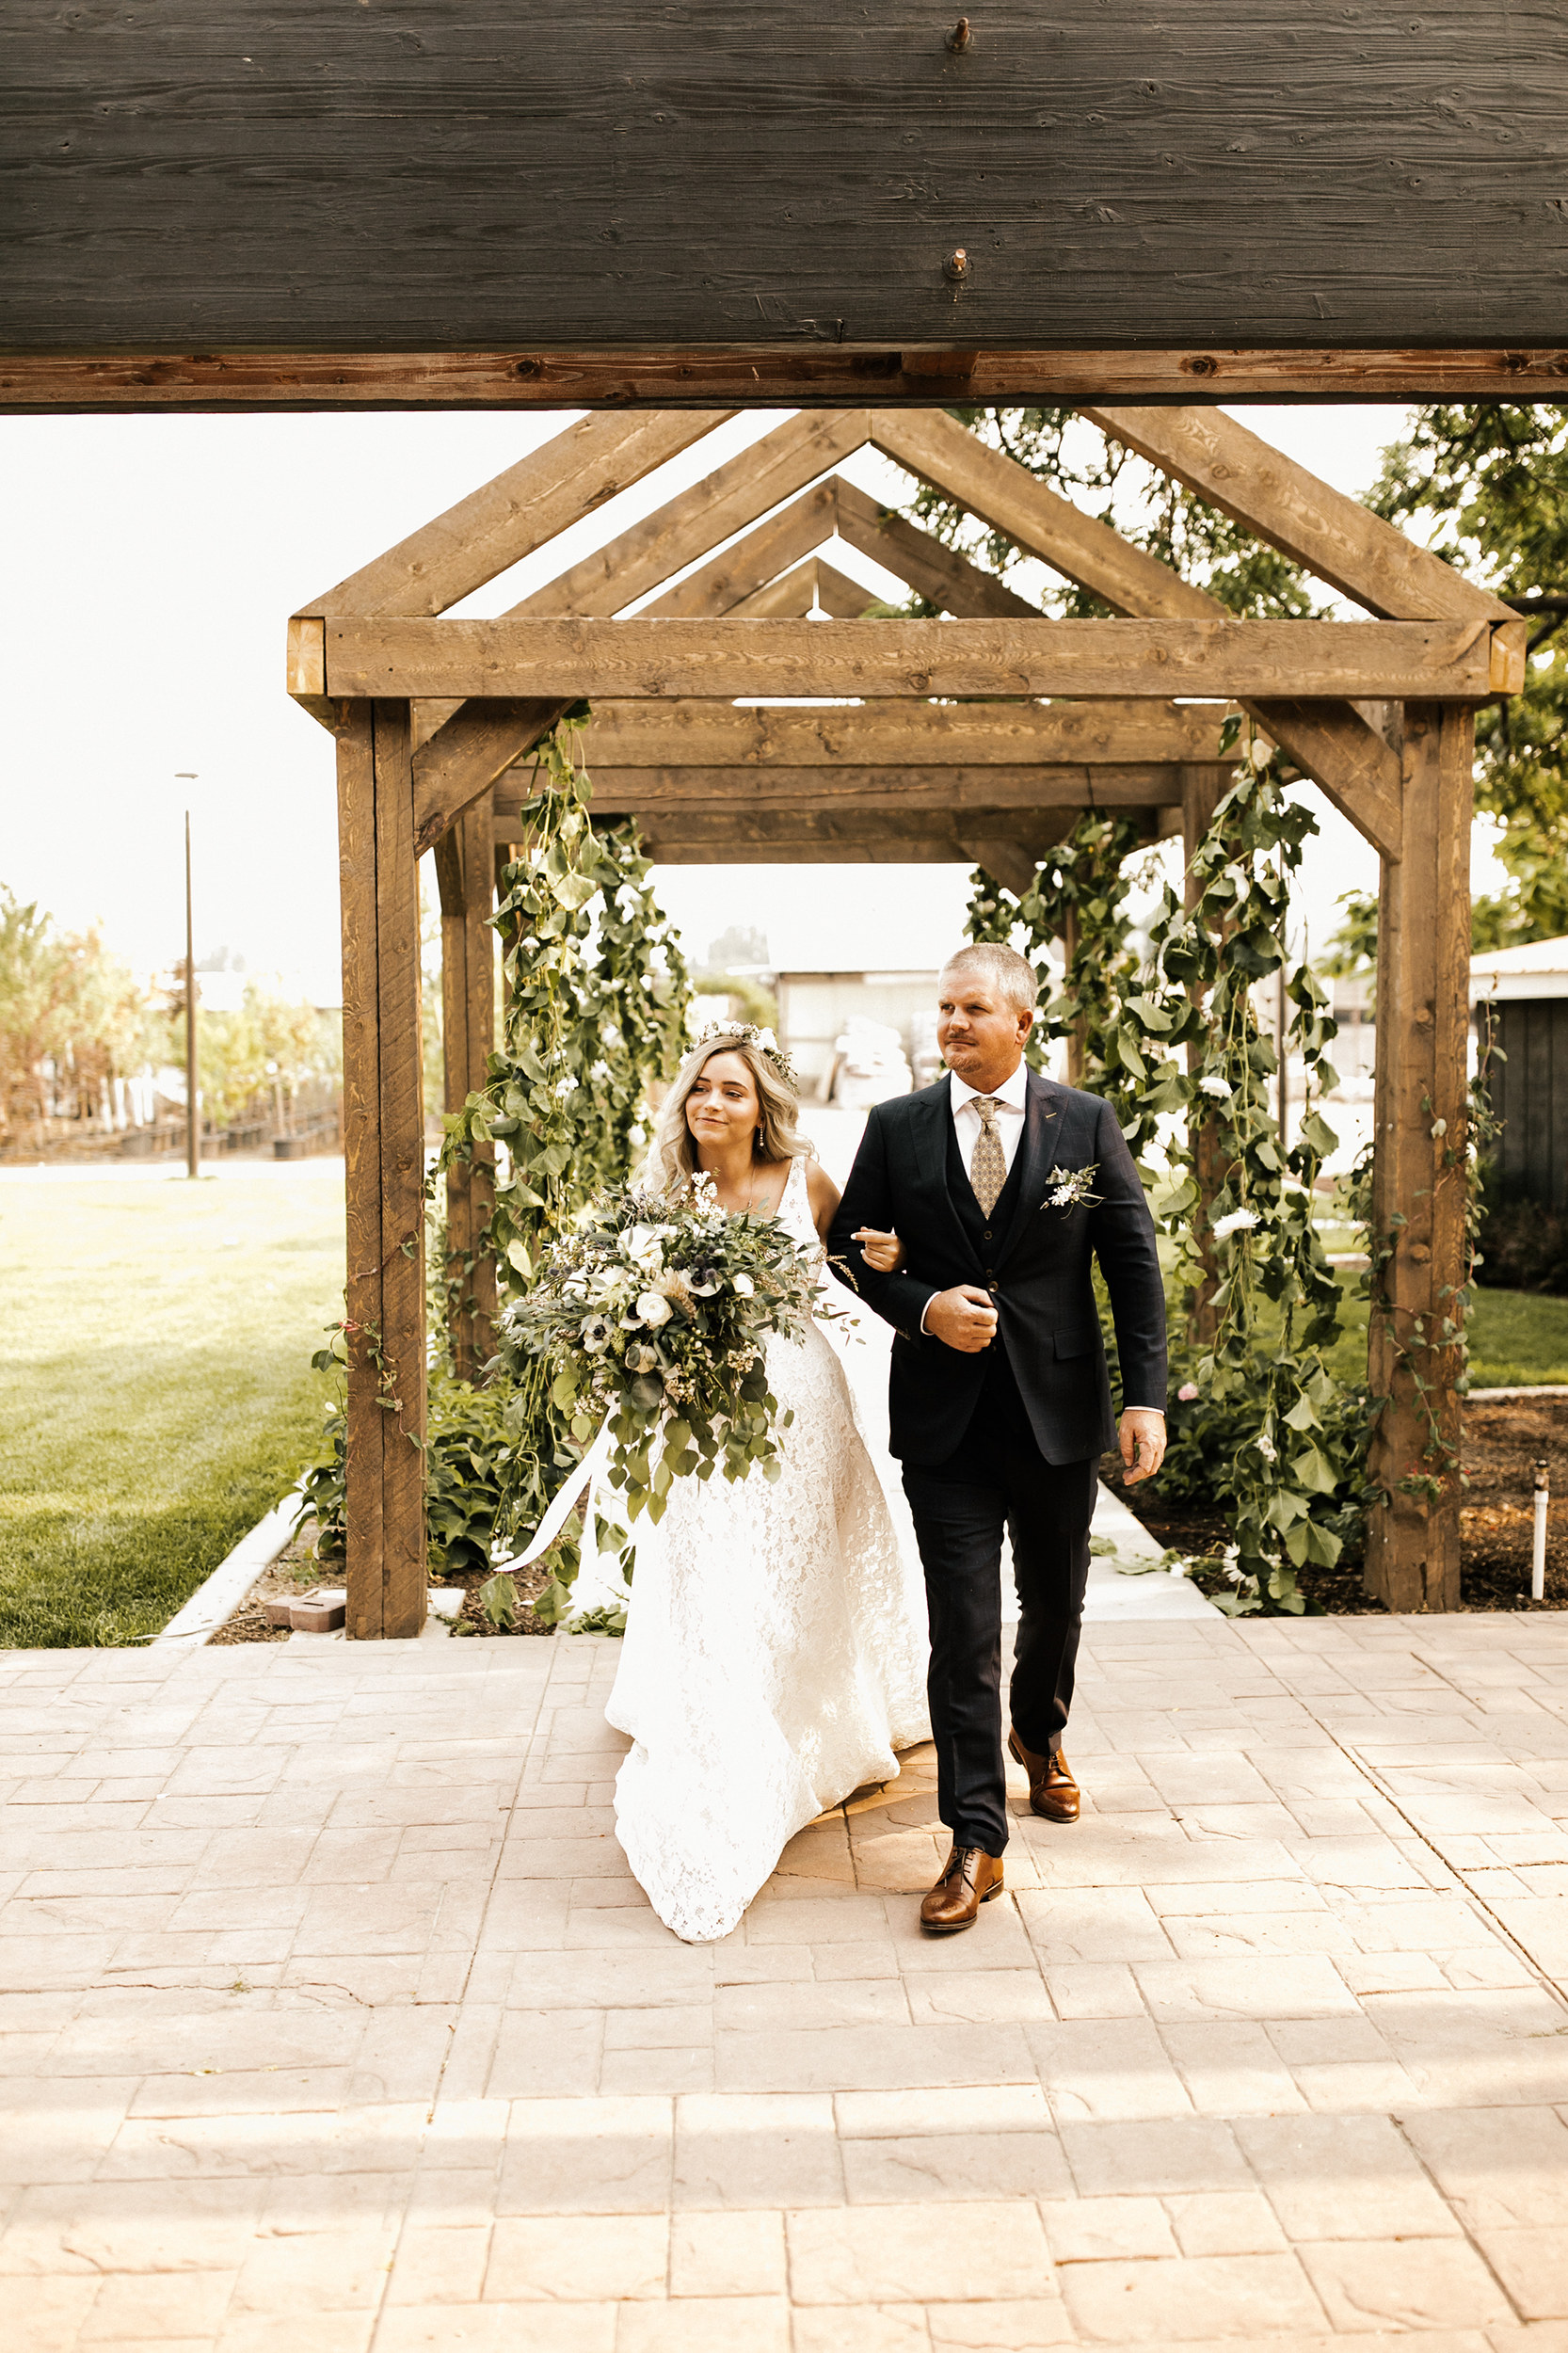 Married couple at Glasshouse Venues